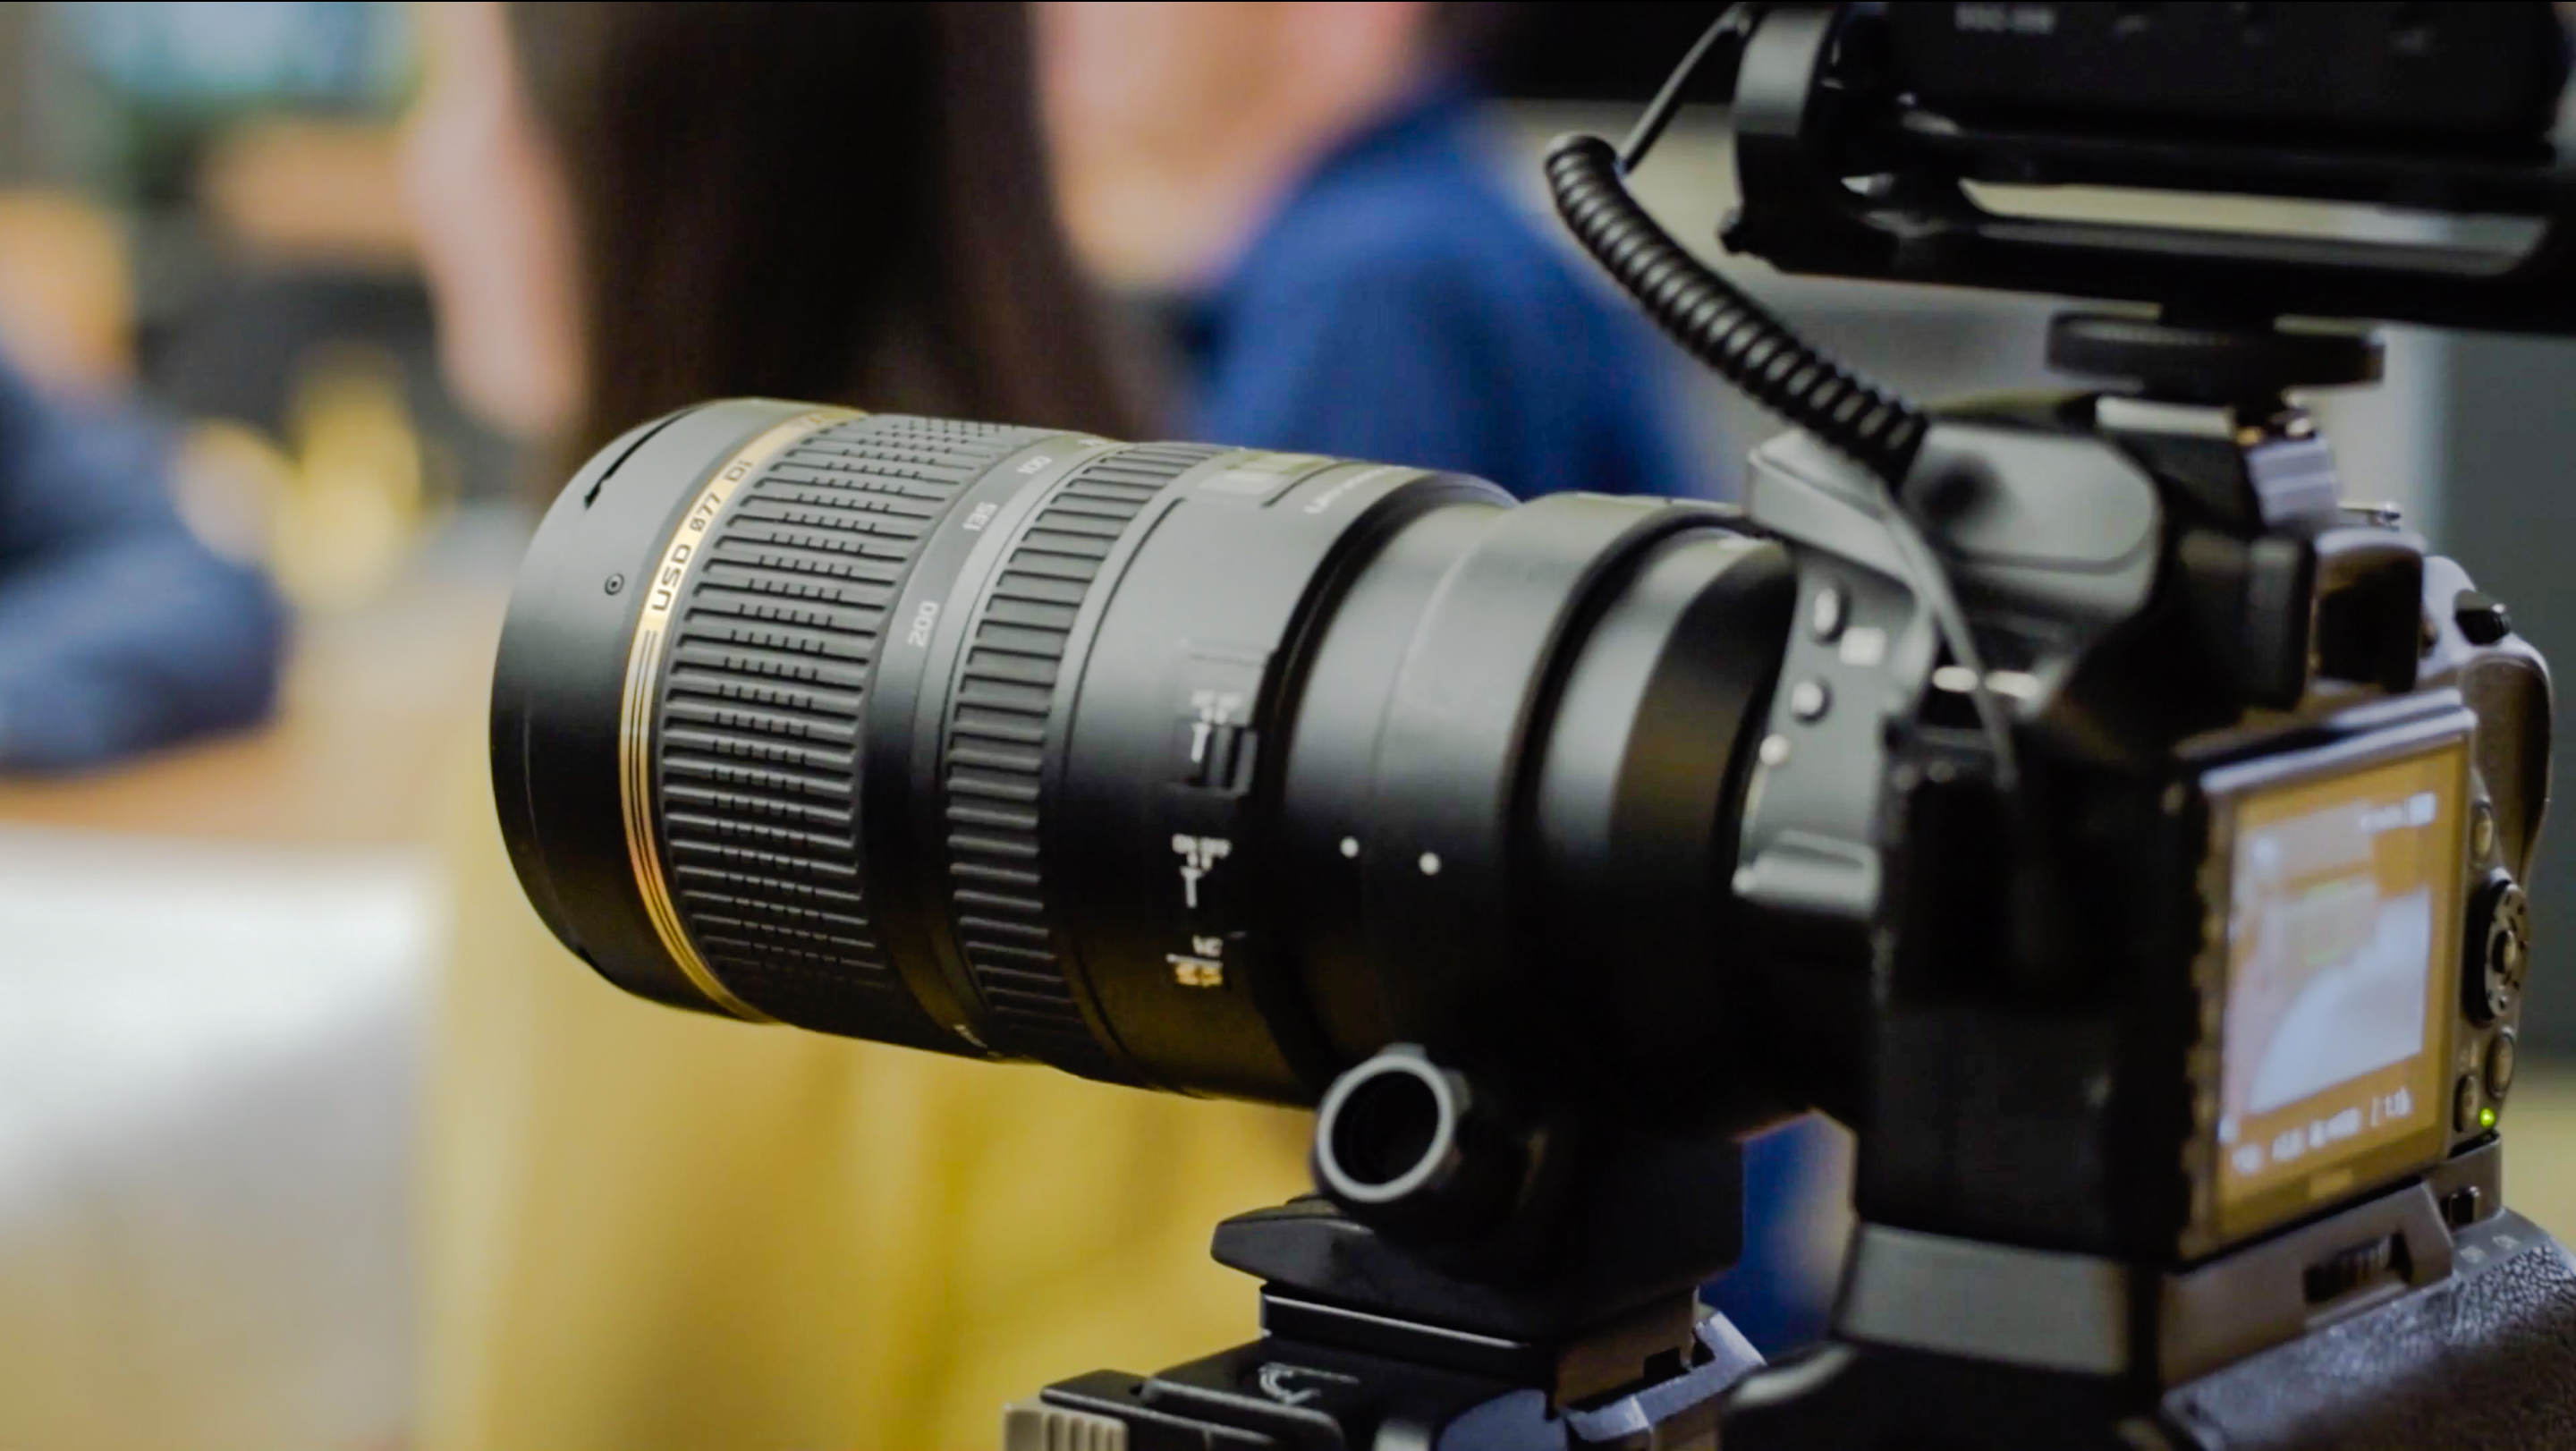 Best Types of Video Marketing For Law Firms